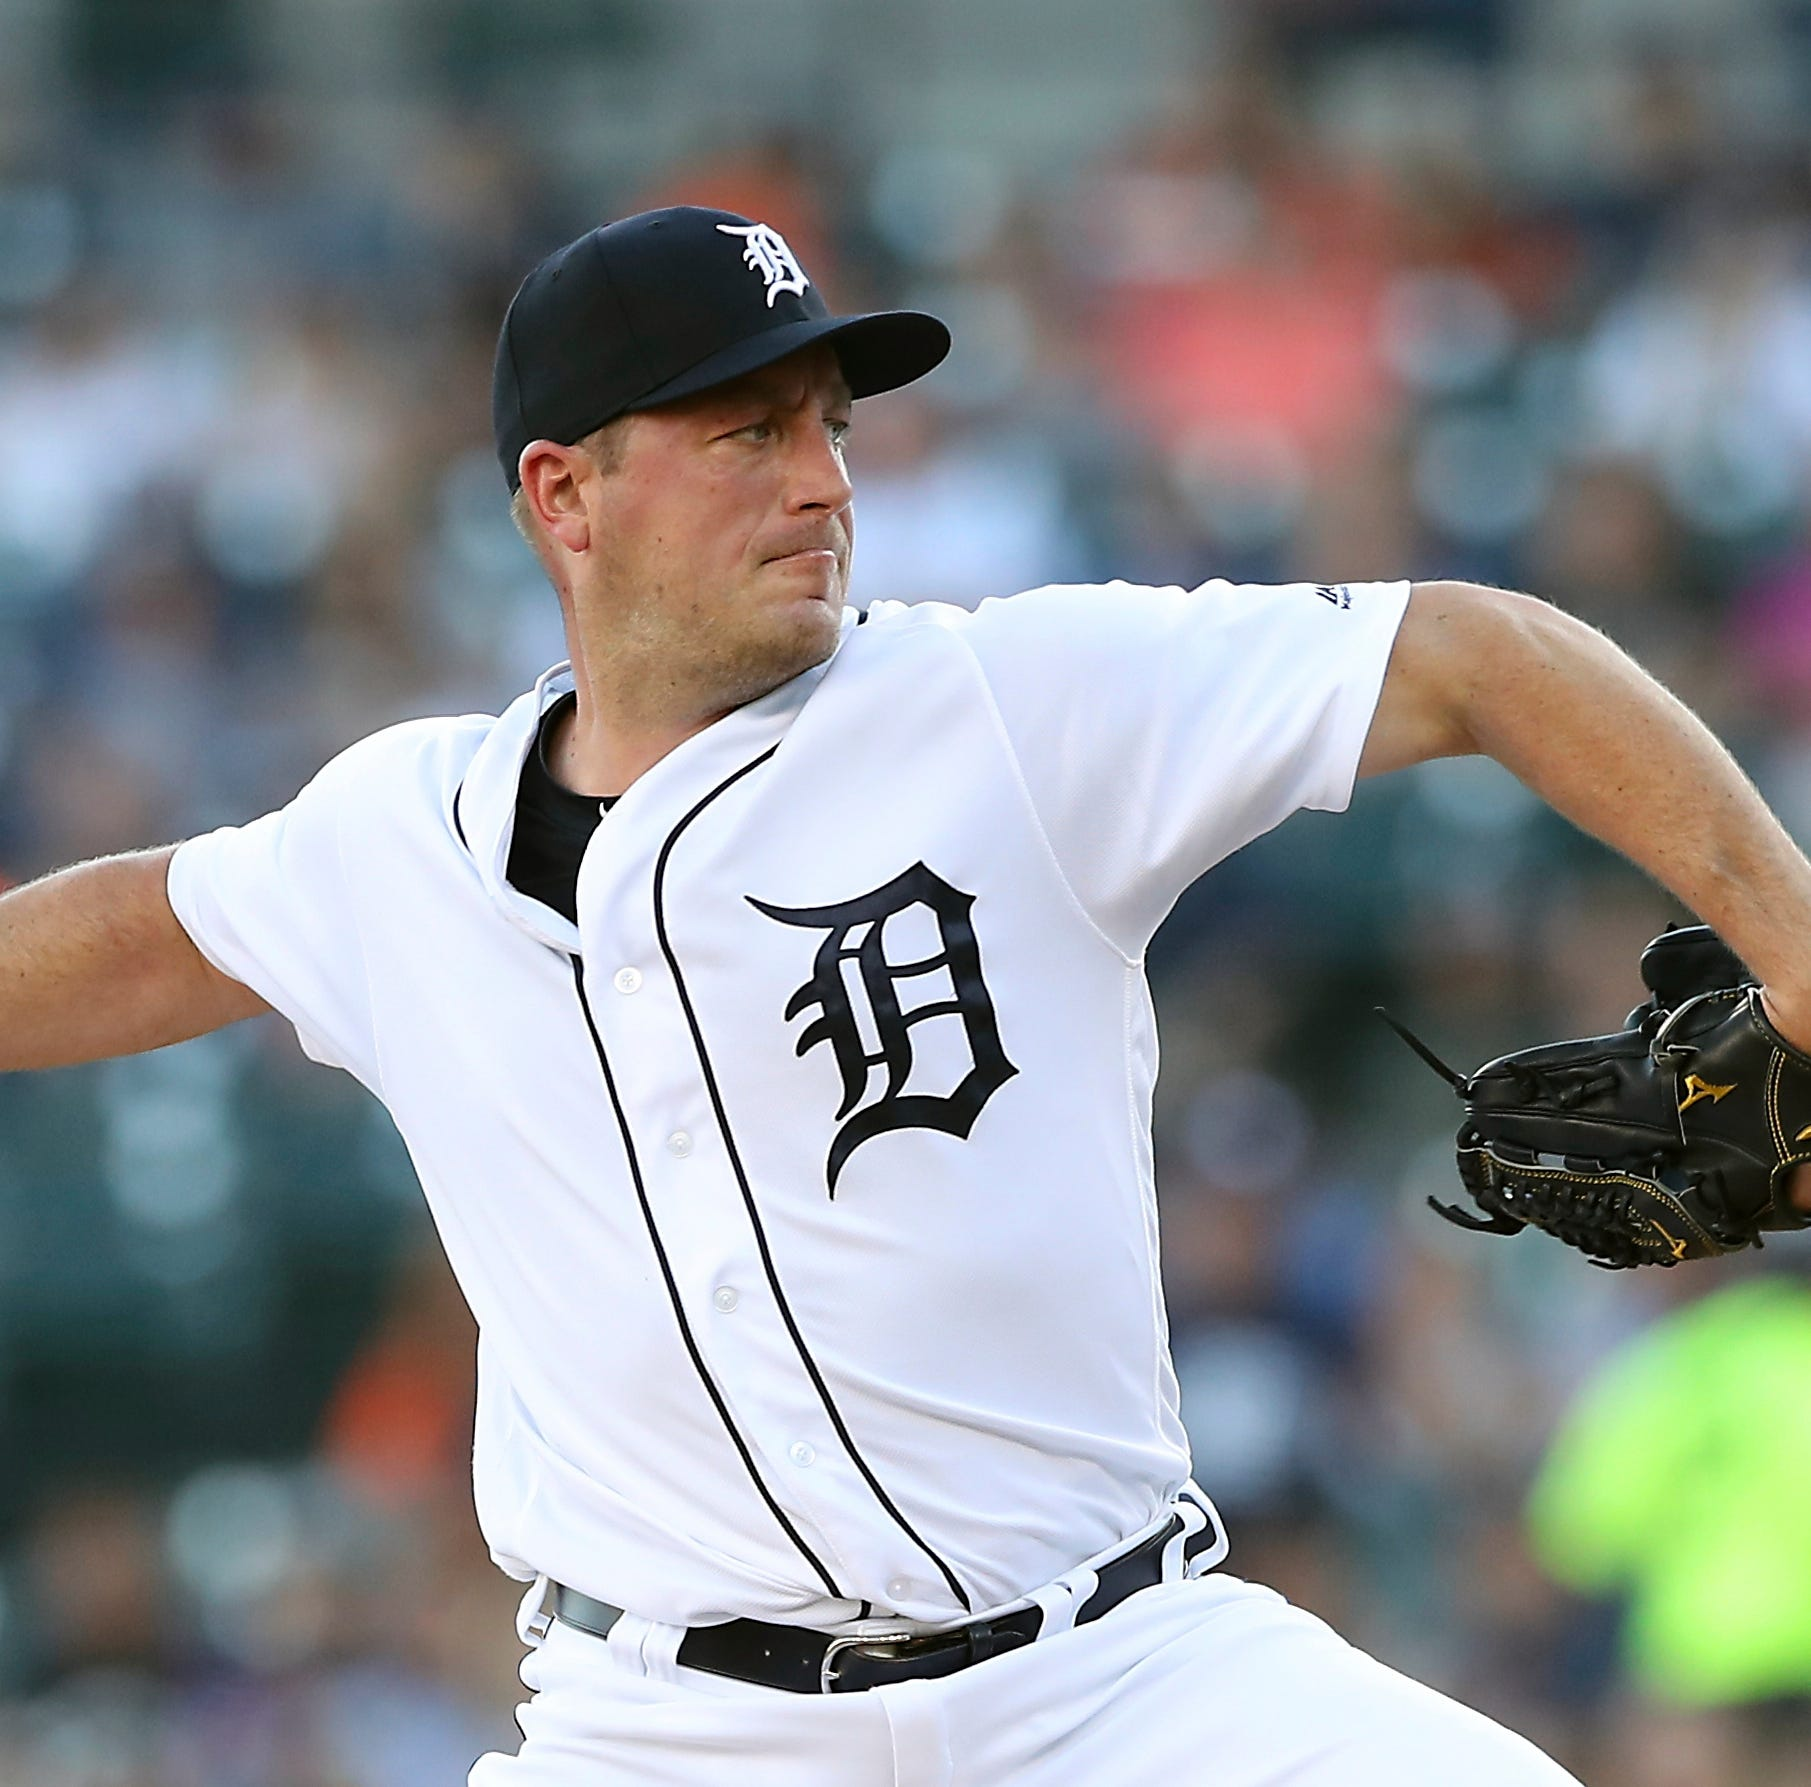 Detroit Tigers lose to Chicago White Sox, 6-5